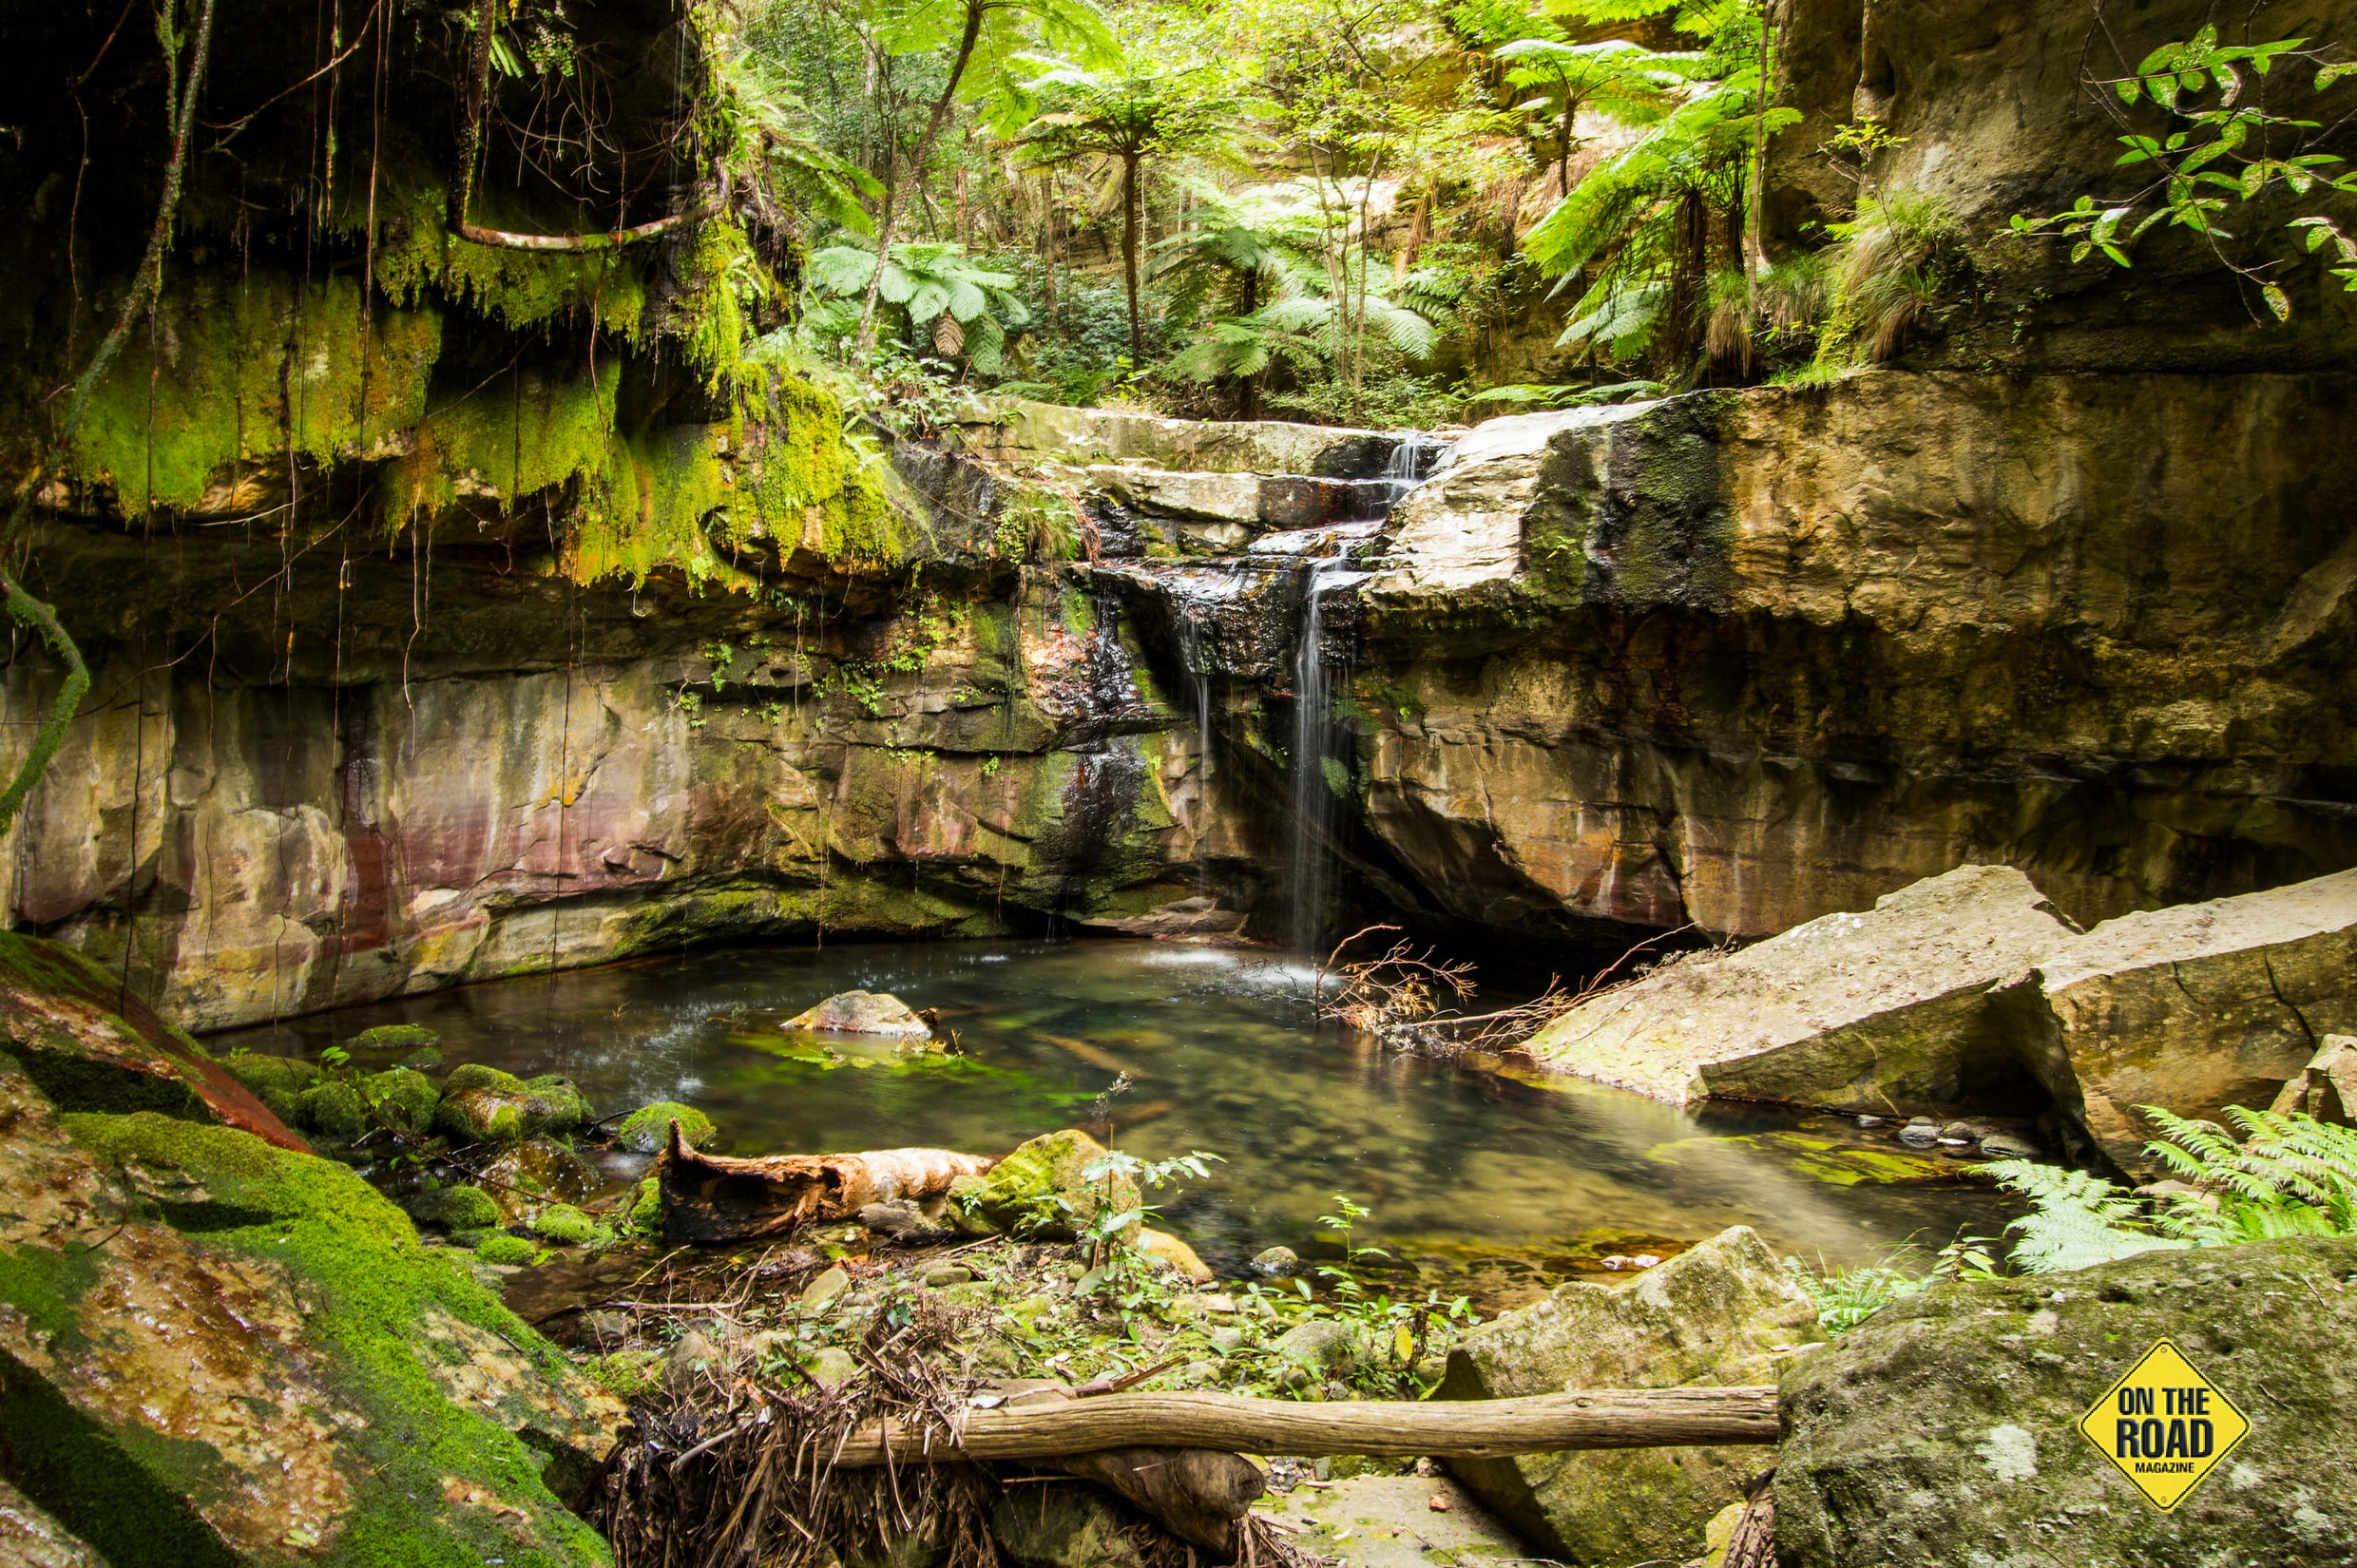 The enchanting Moss Garden is the first of a number of delightful detours off the main walking track.